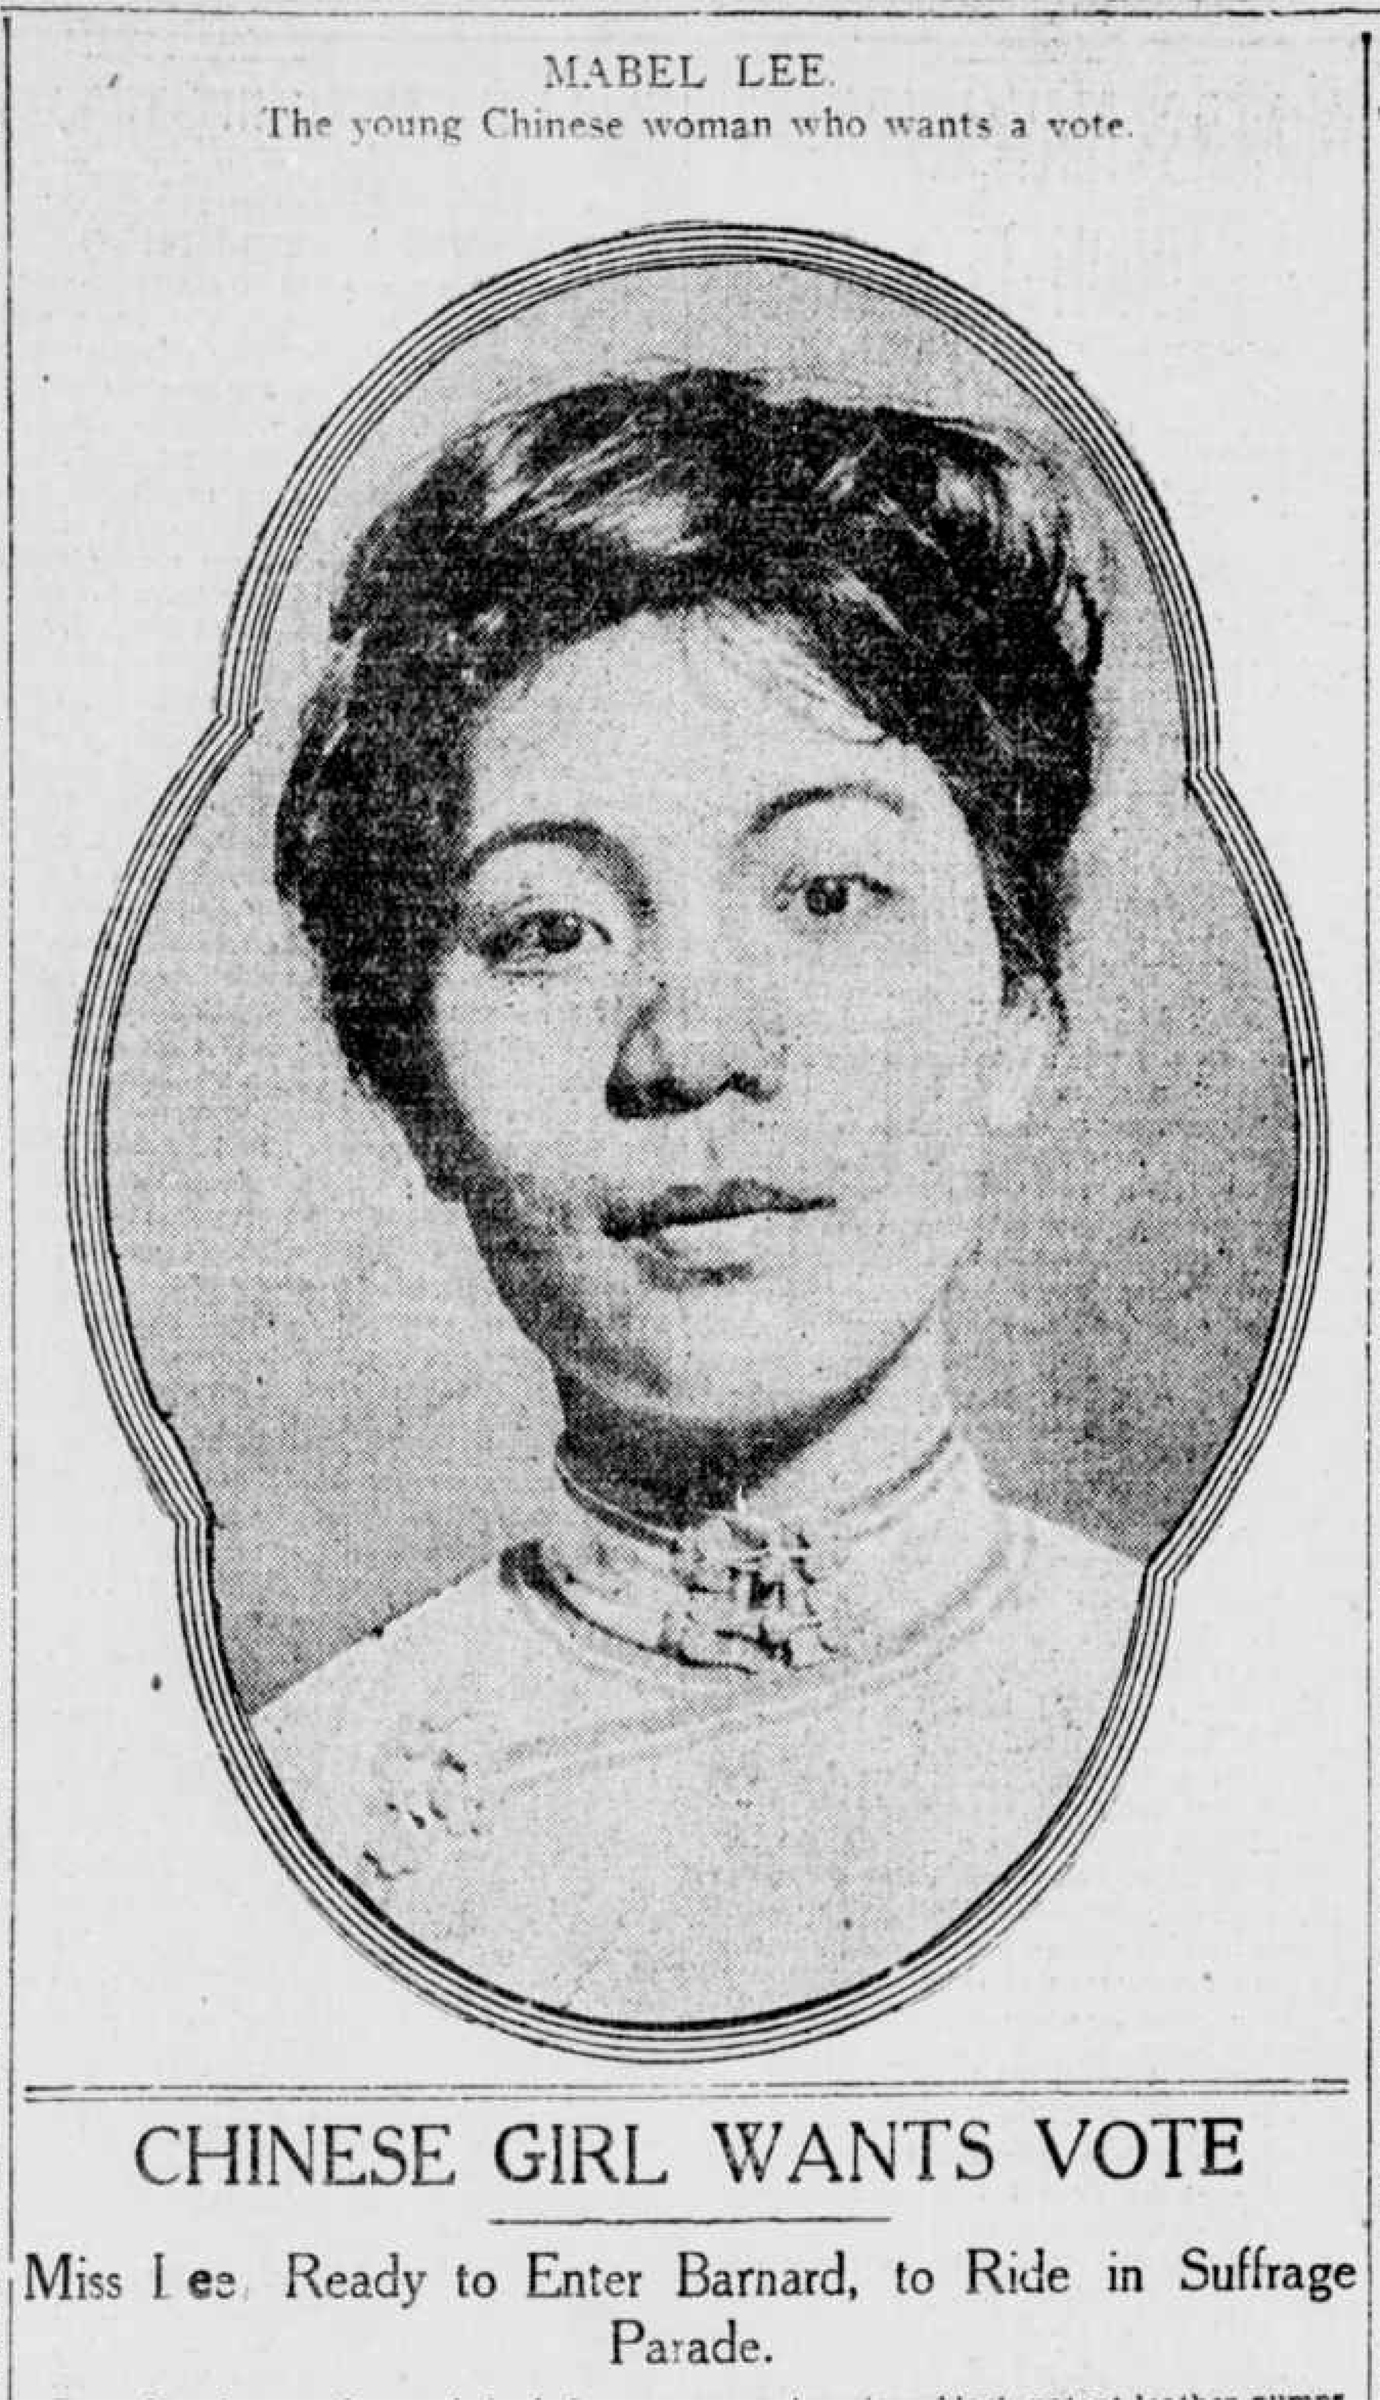 Chinese suffragist Mabel Lee was profiled in the April 13, 1912, edition of the New-York Tribune.